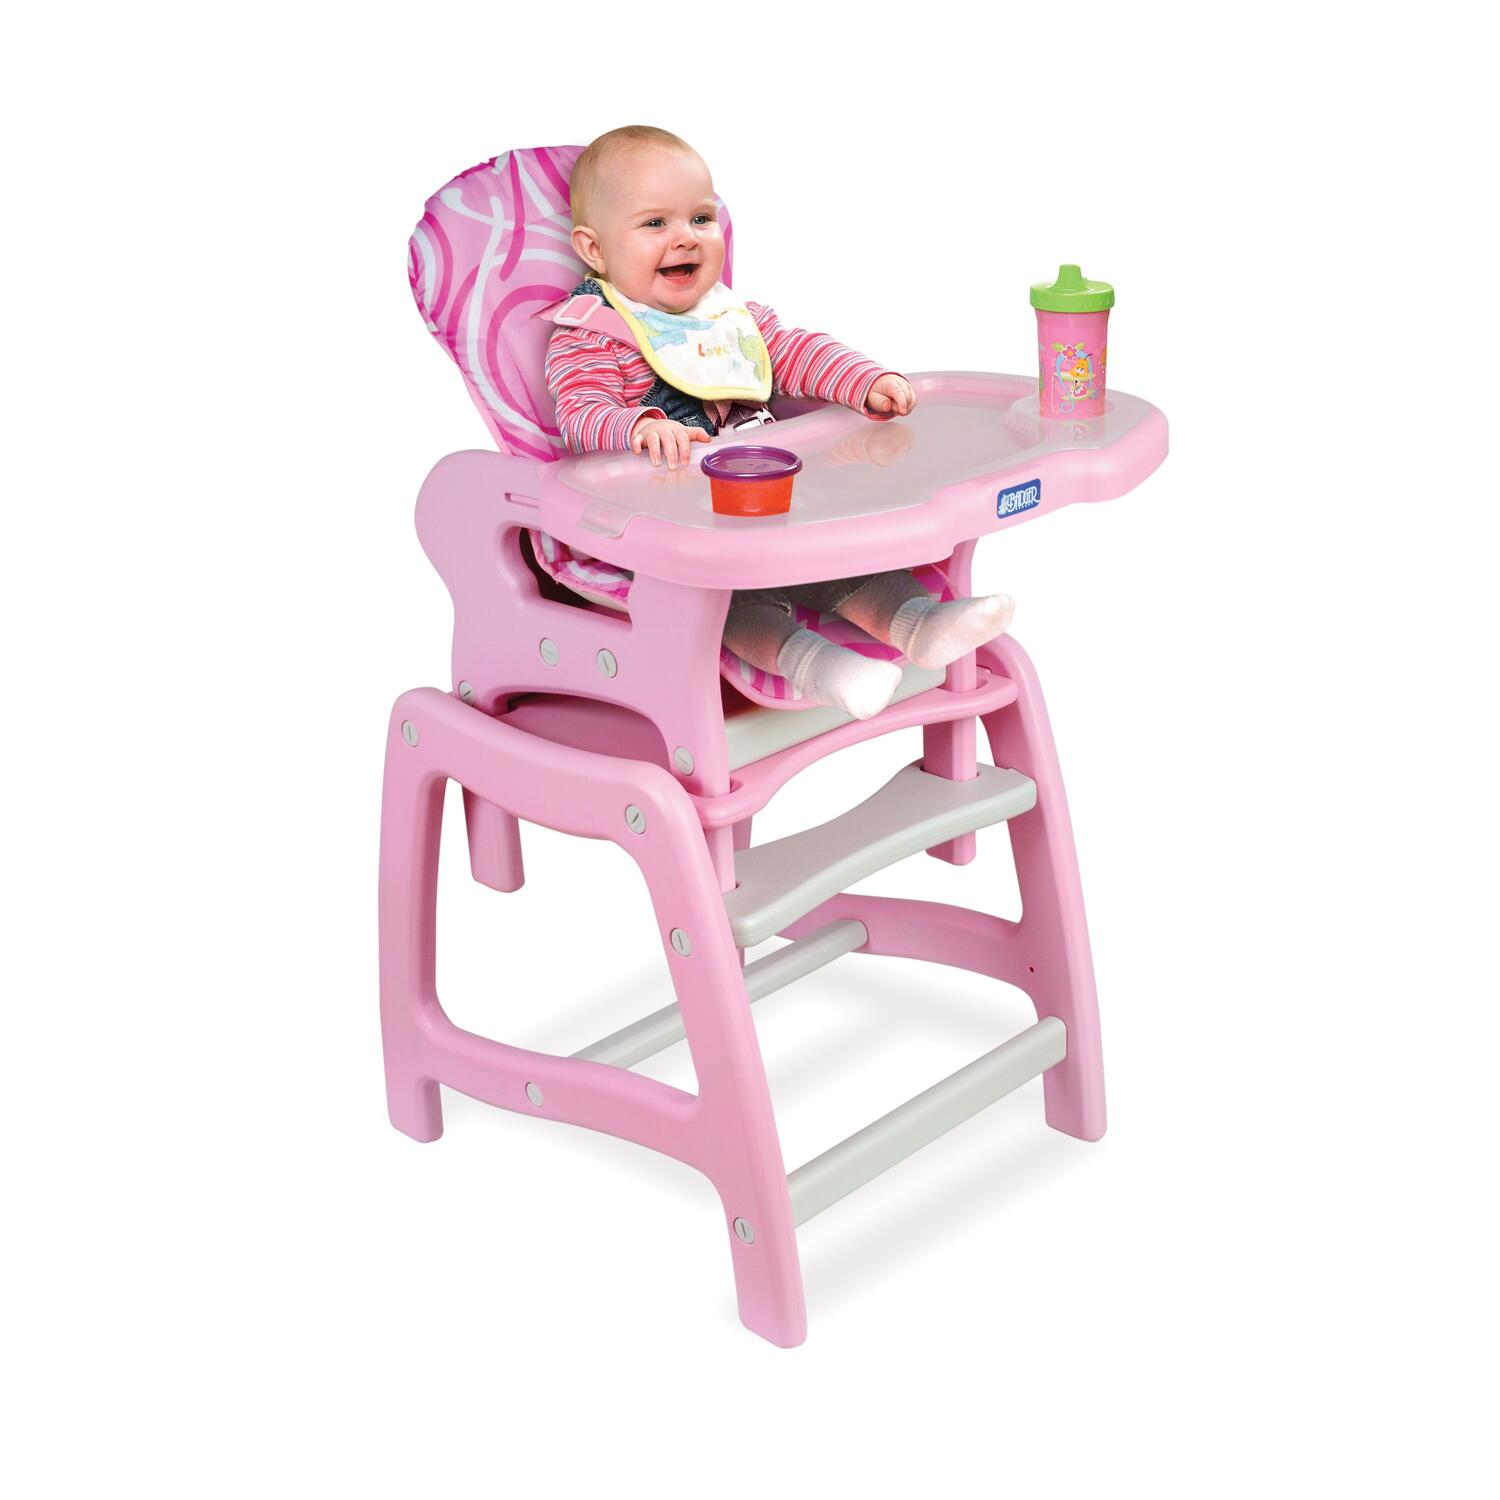 Minnie Mouse Furniture additionally Solid Hang A Round Chair as well Envee baby high chair with playtable conversion in addition 1947746 moreover Posts. on toddler high chairs at target